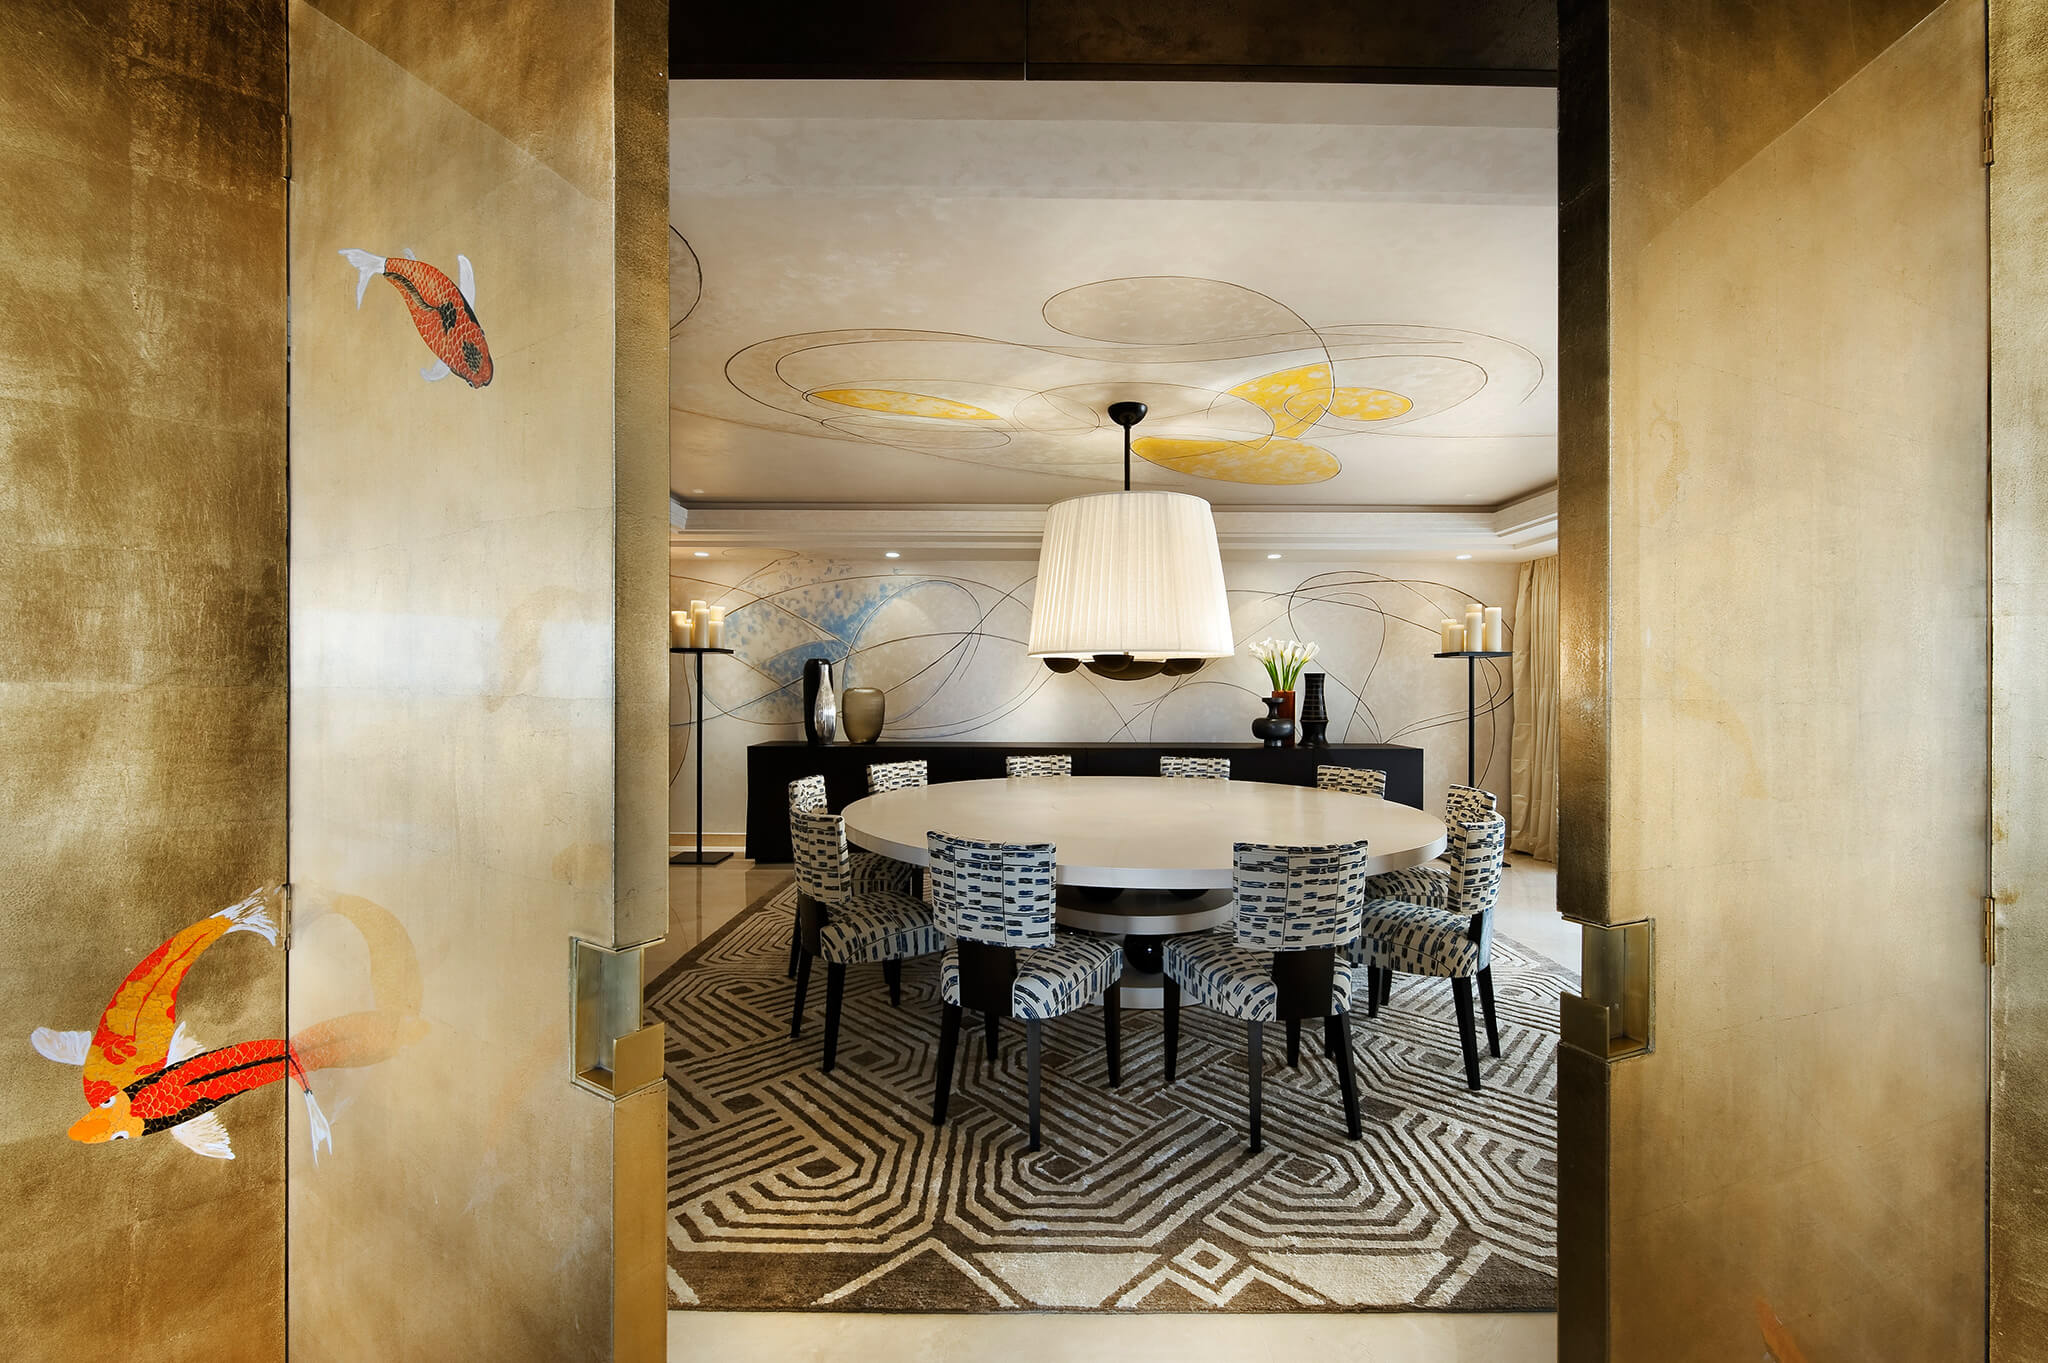 These Are Some Incredible Interior Design Projects In The World 24